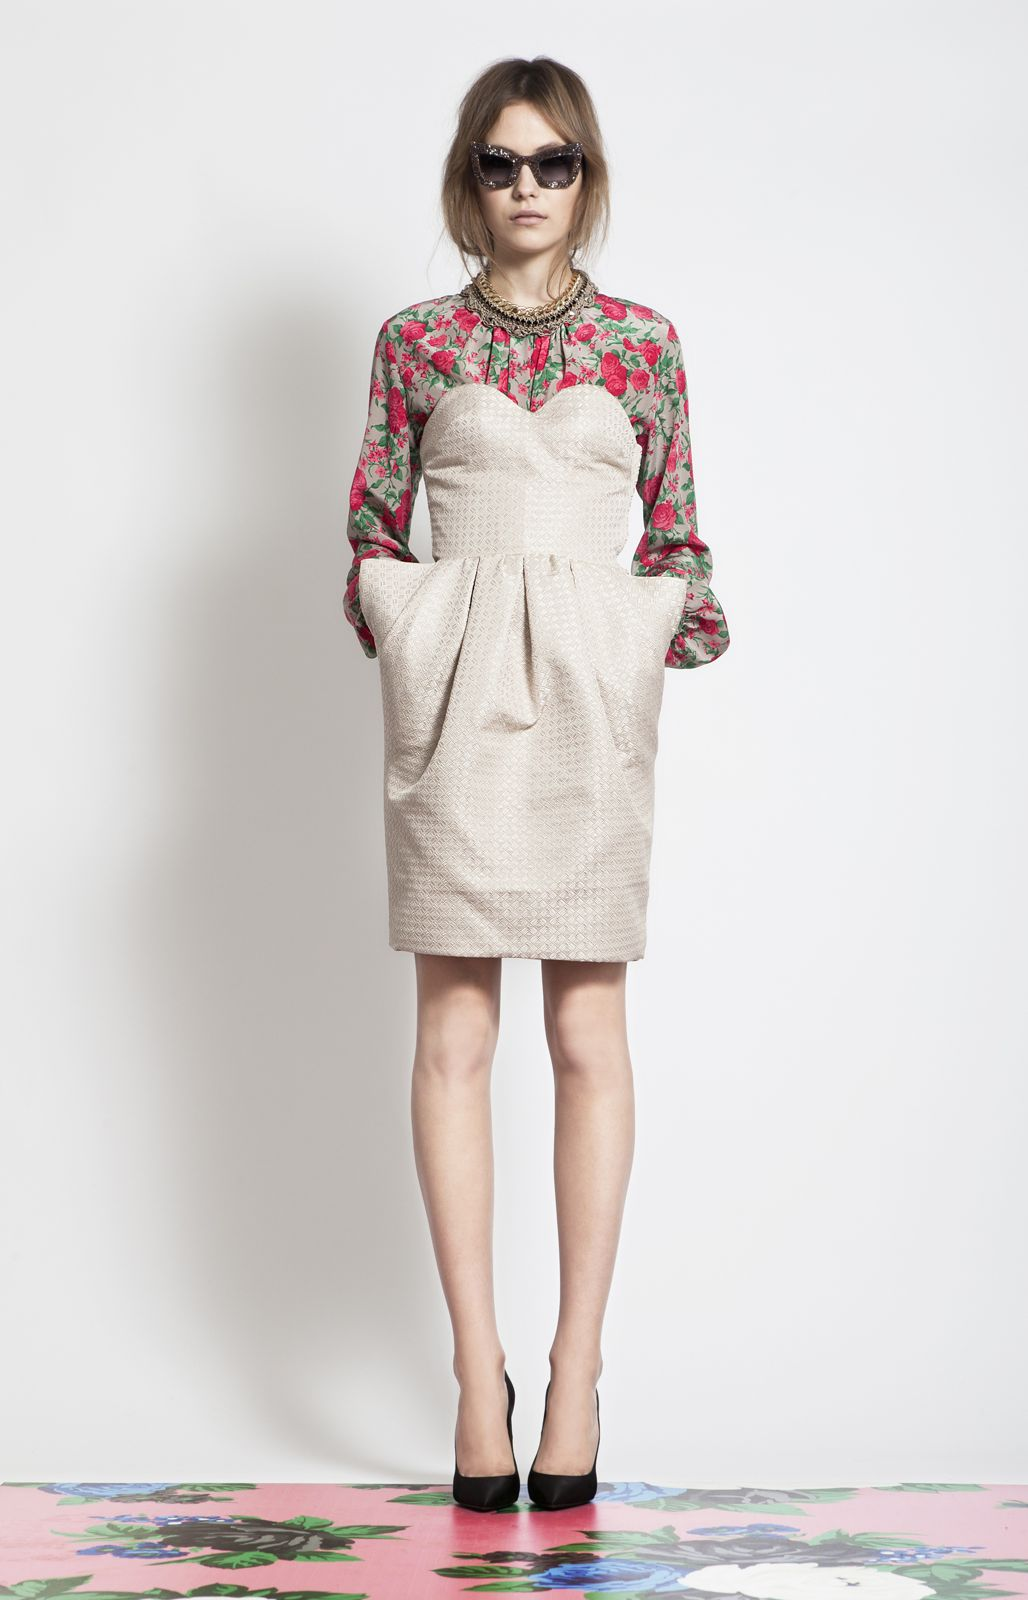 MSGM Women's Pre-Fall 2012-13 Collection